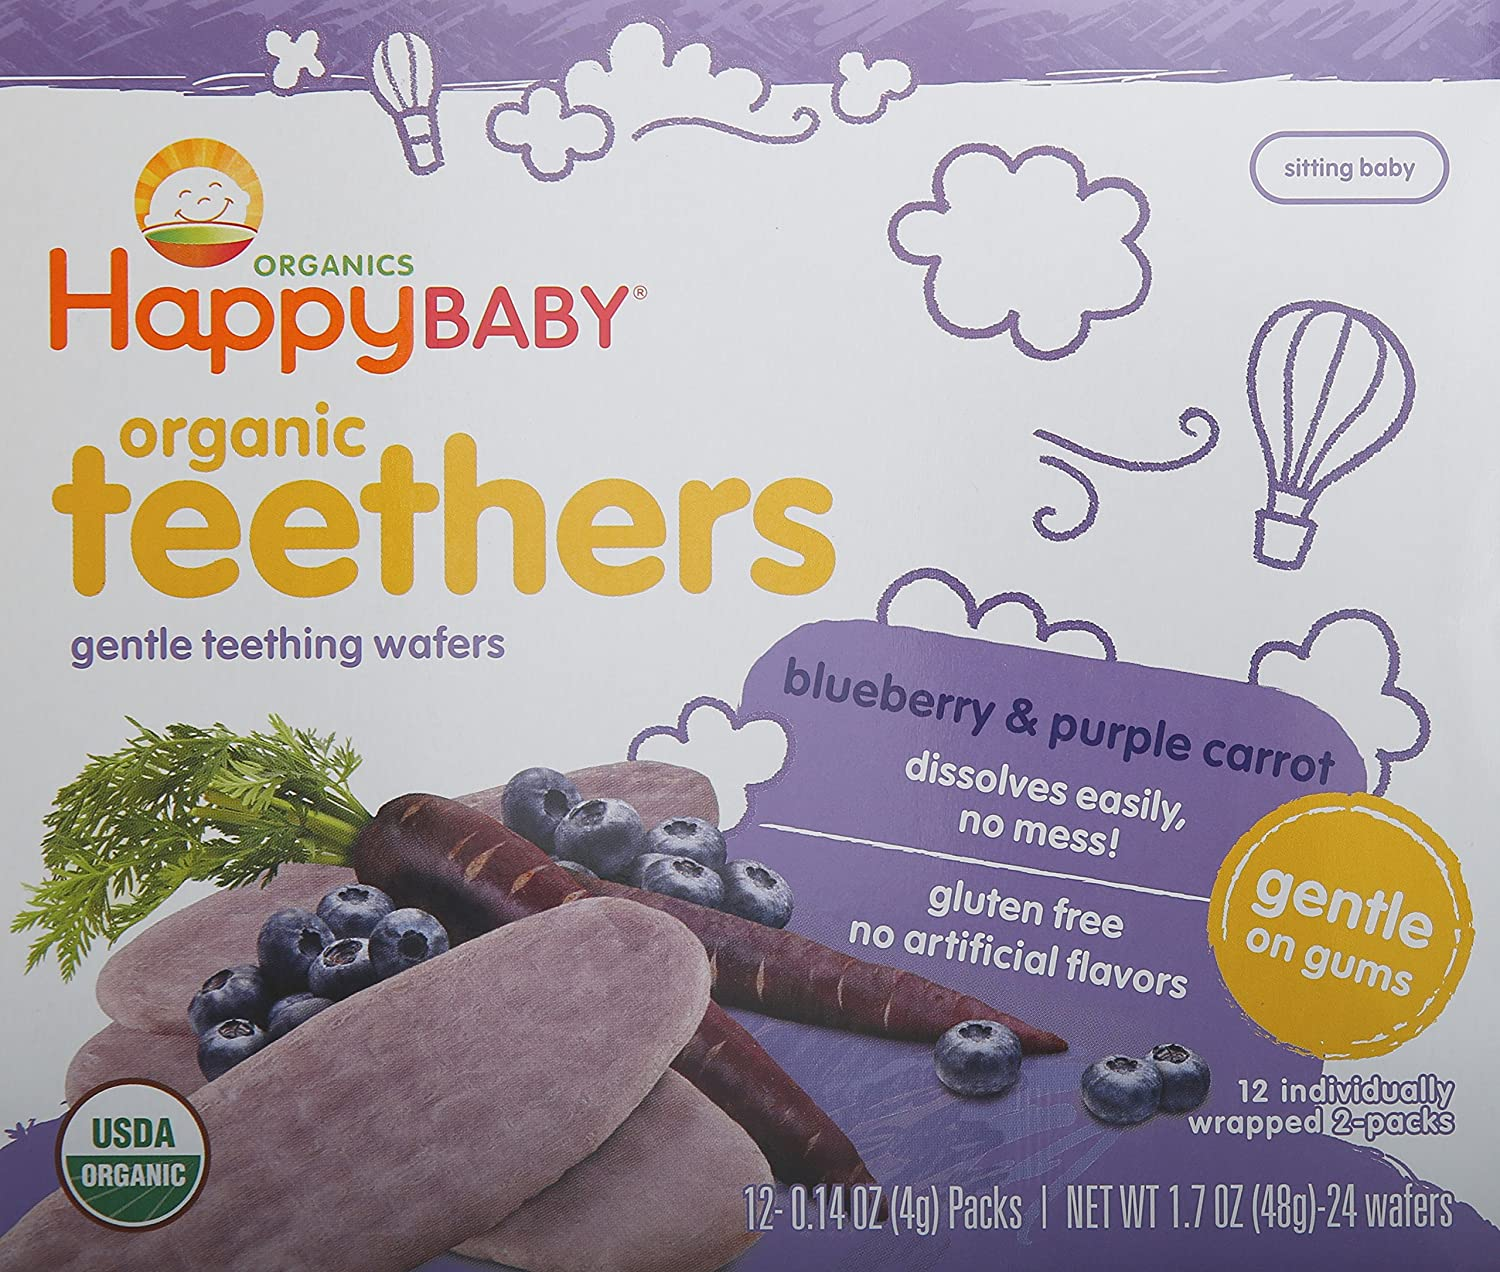 Happy Baby Gentle Teethers Organic Teething Wafers Banana Sweet Potato, 12 Count Box(Pack of 6) Soothing Rice Cookies for Teething Babies Dissolves Easily Organic Gluten Free No Artificial Flavor 01175